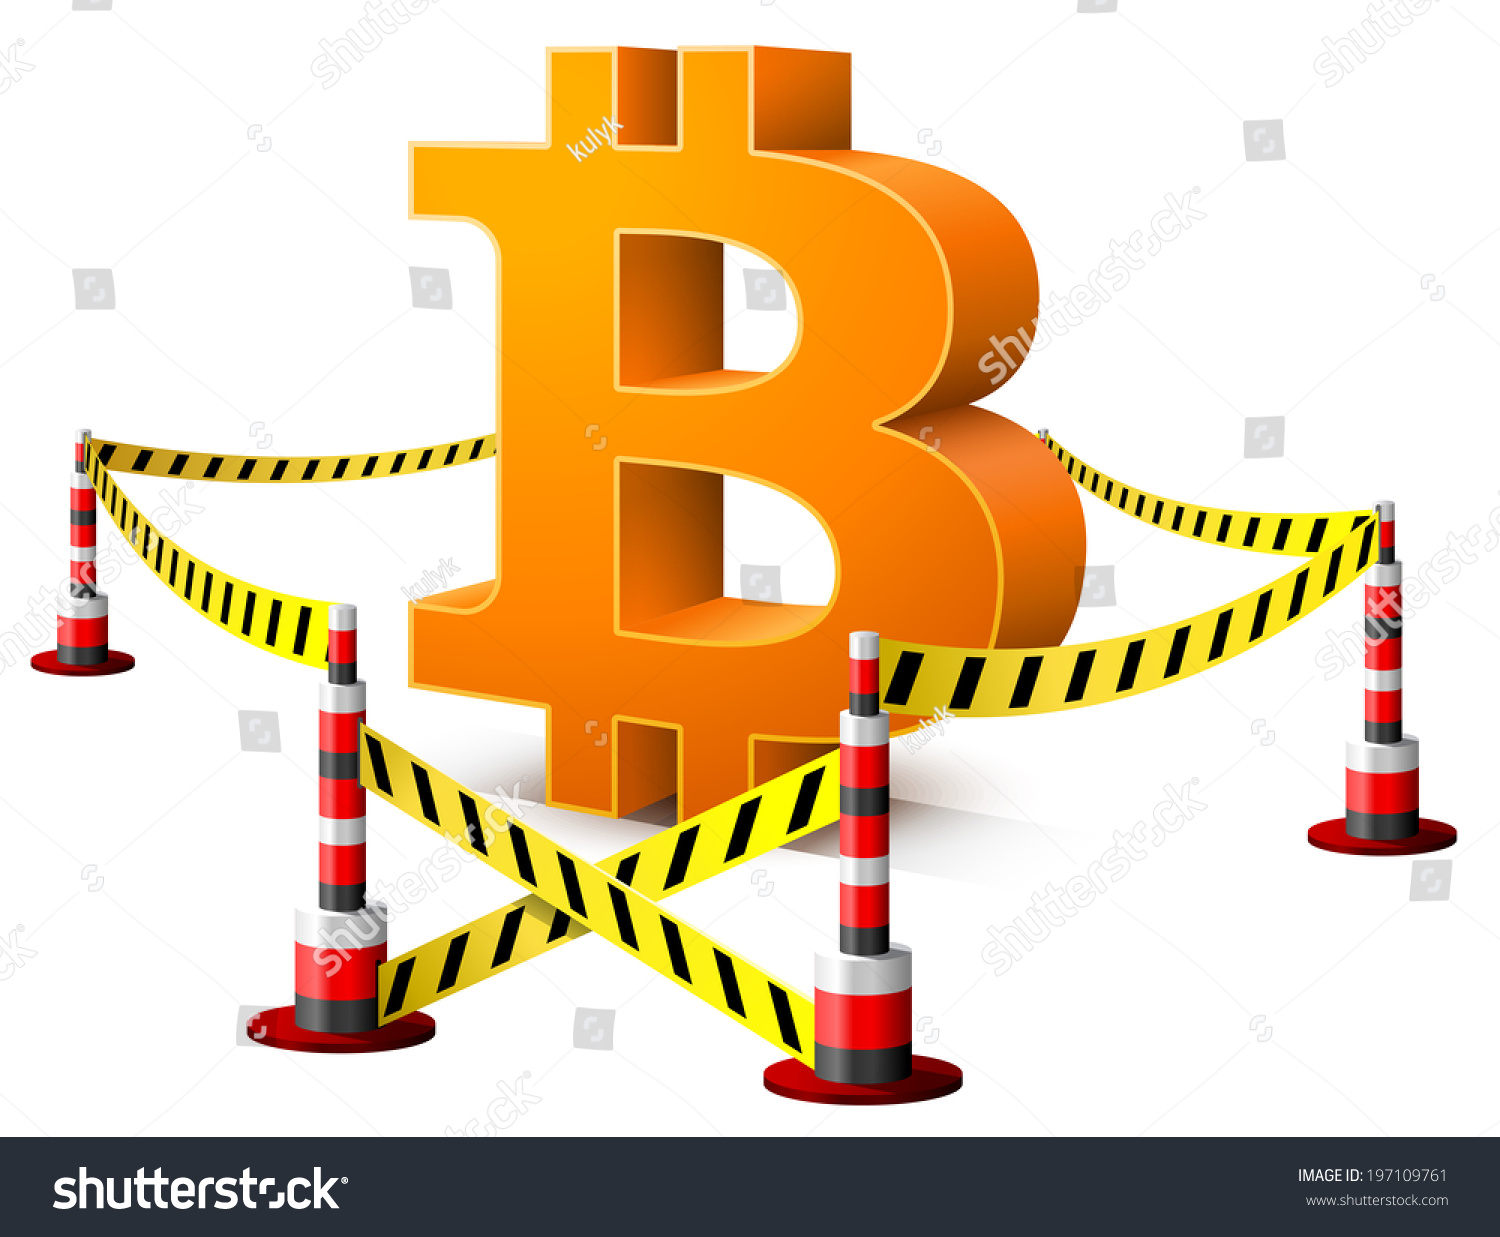 Bitcoin Symbol Located Restricted Area Dangerous Stock Illustration